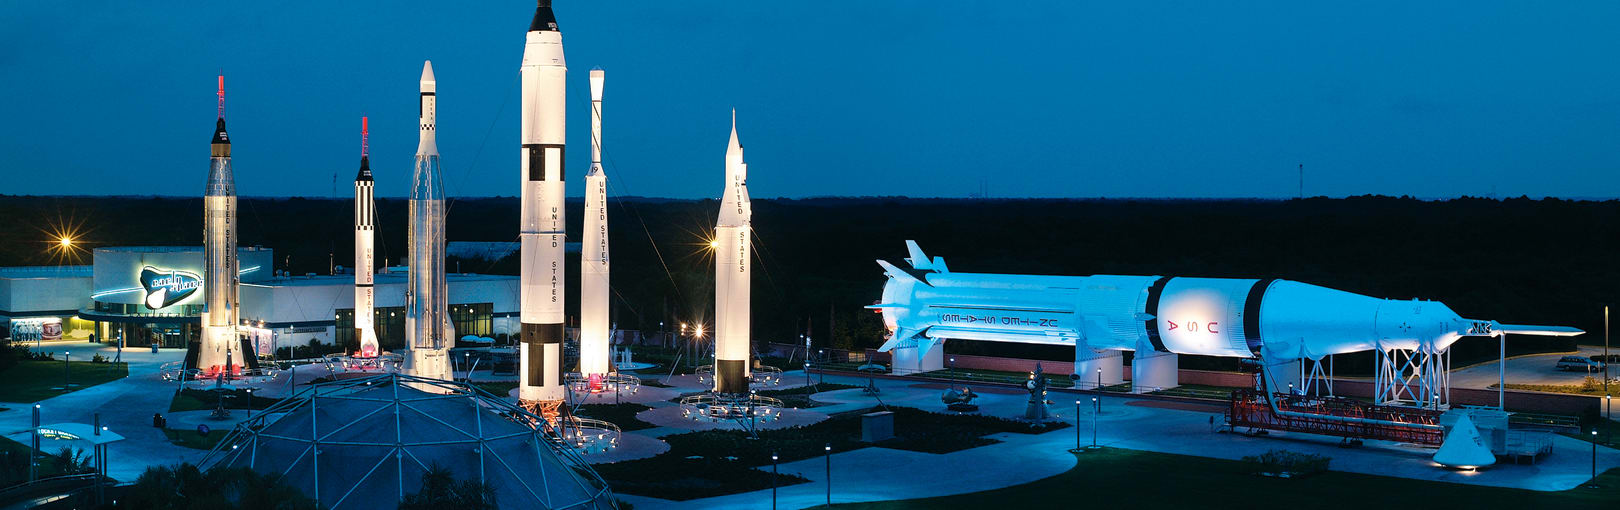 Bus Tours from Orlando. Swim with Dolphins! Visit the Kennedy Space Center! Theme Park Express!